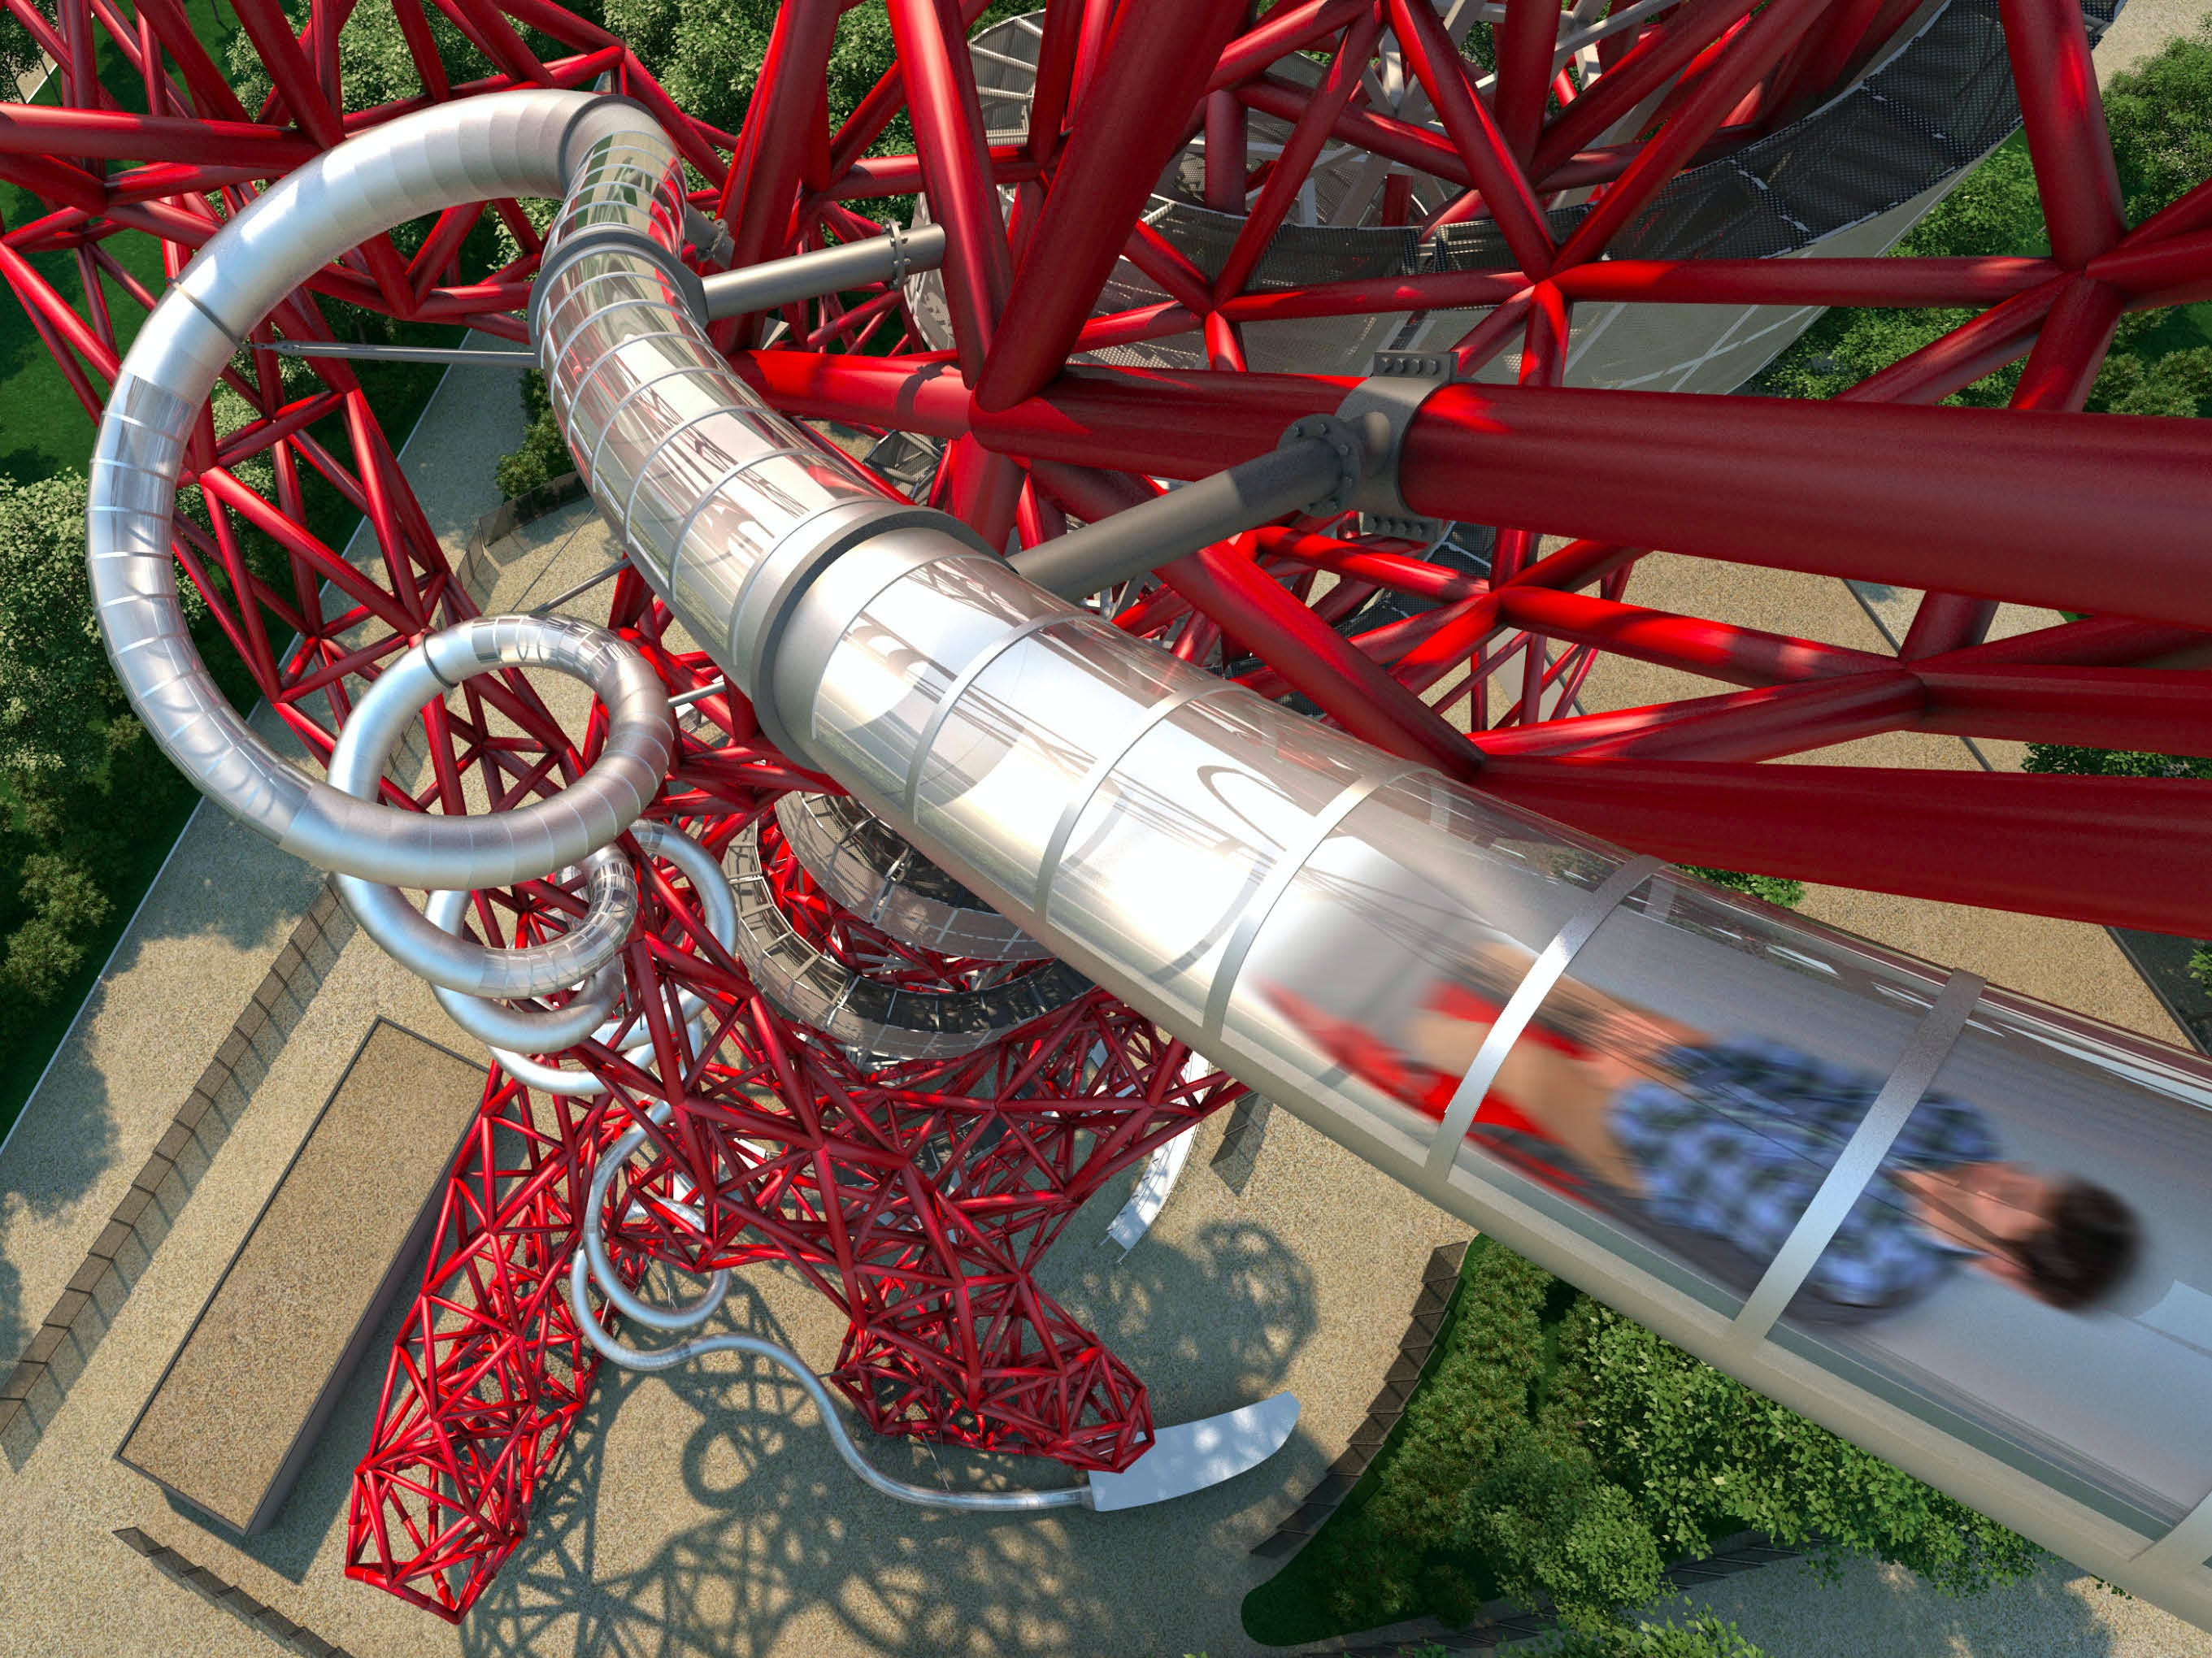 arcelormittal orbit & the slide option-4